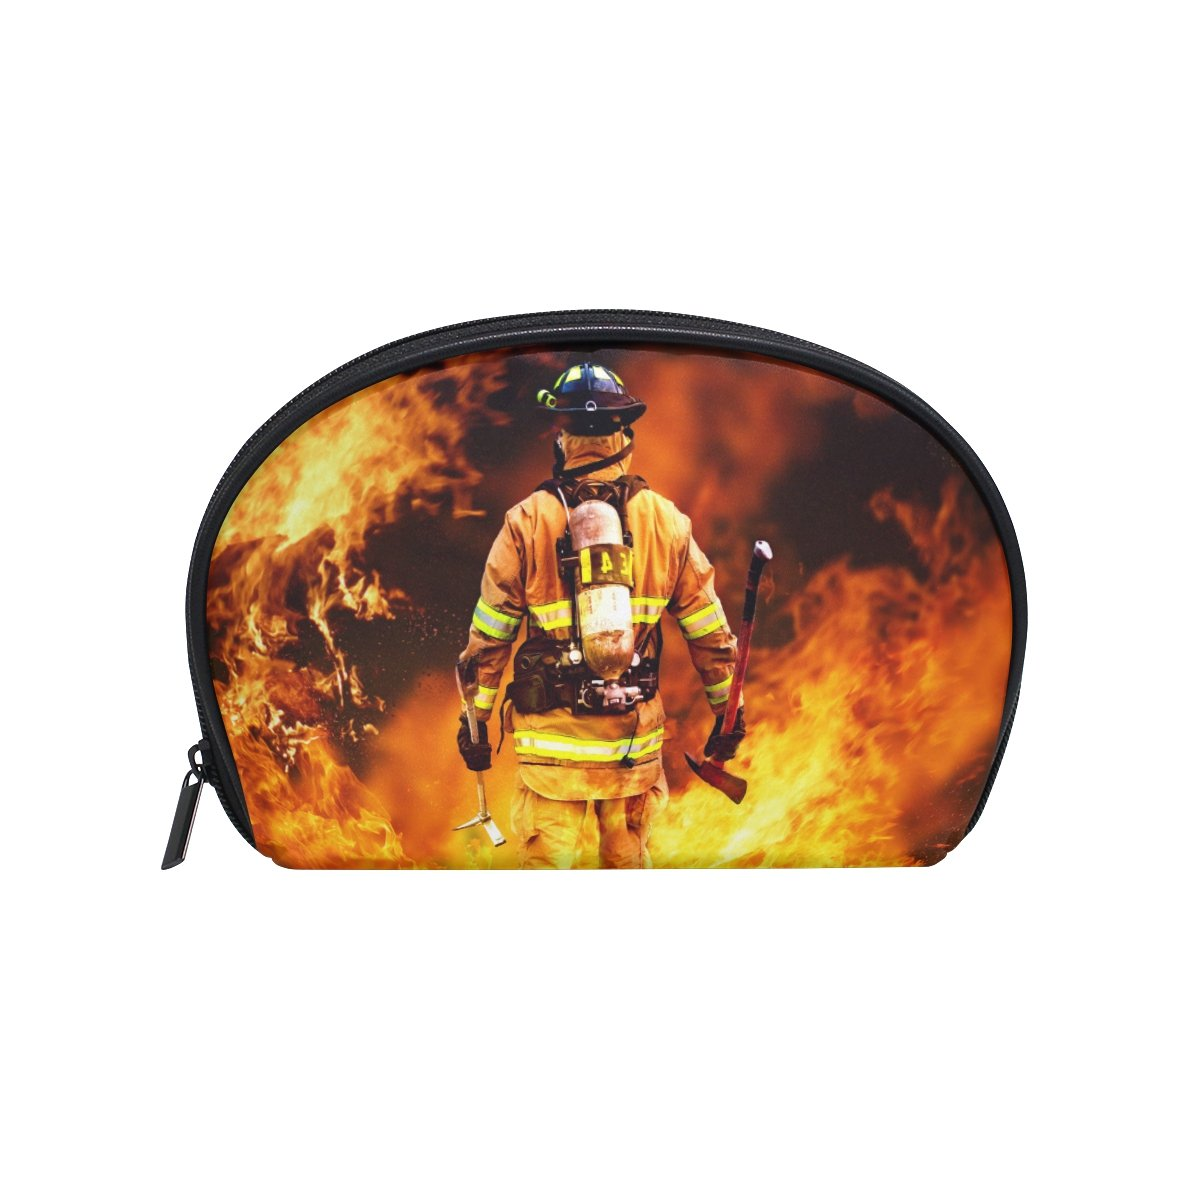 ALAZA Firefighter Half Moon Cosmetic Makeup Toiletry Bag Pouch Travel Handy Purse Organizer Bag for Women Girls